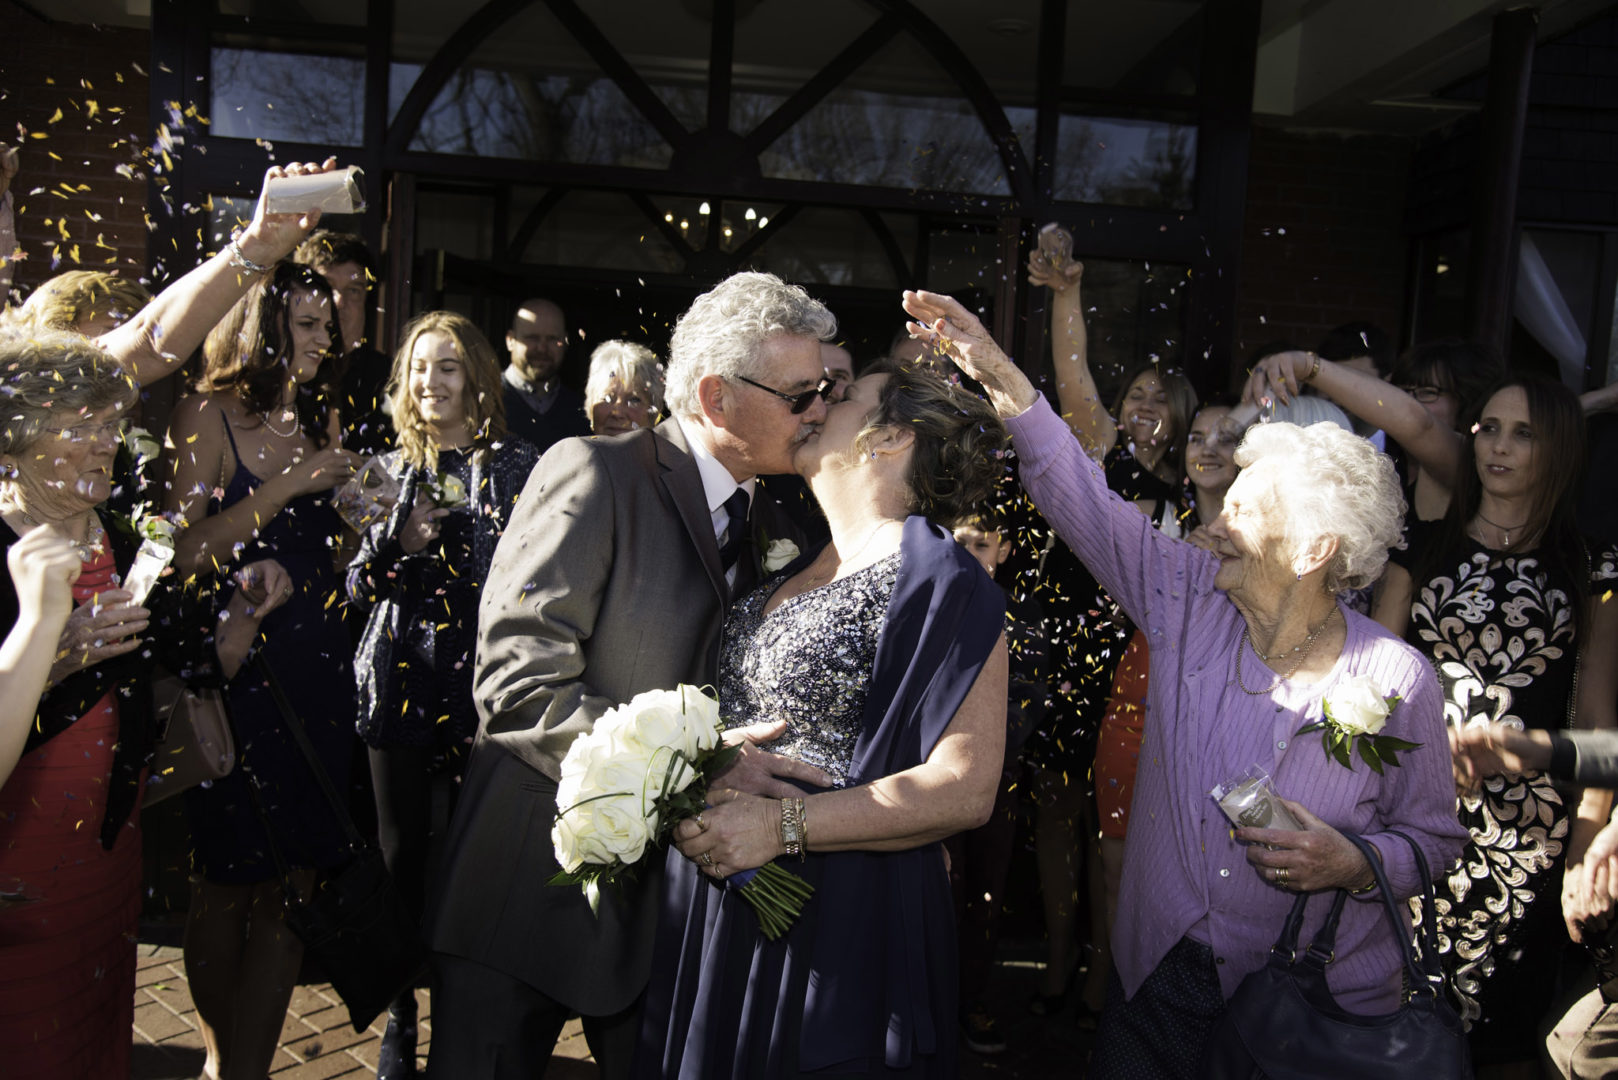 A confetti toss in the sun, beautiful petals rain over Lynn and Doug. Photo by AJTImages. Wedding vow renewal at The Royal Court Hotel